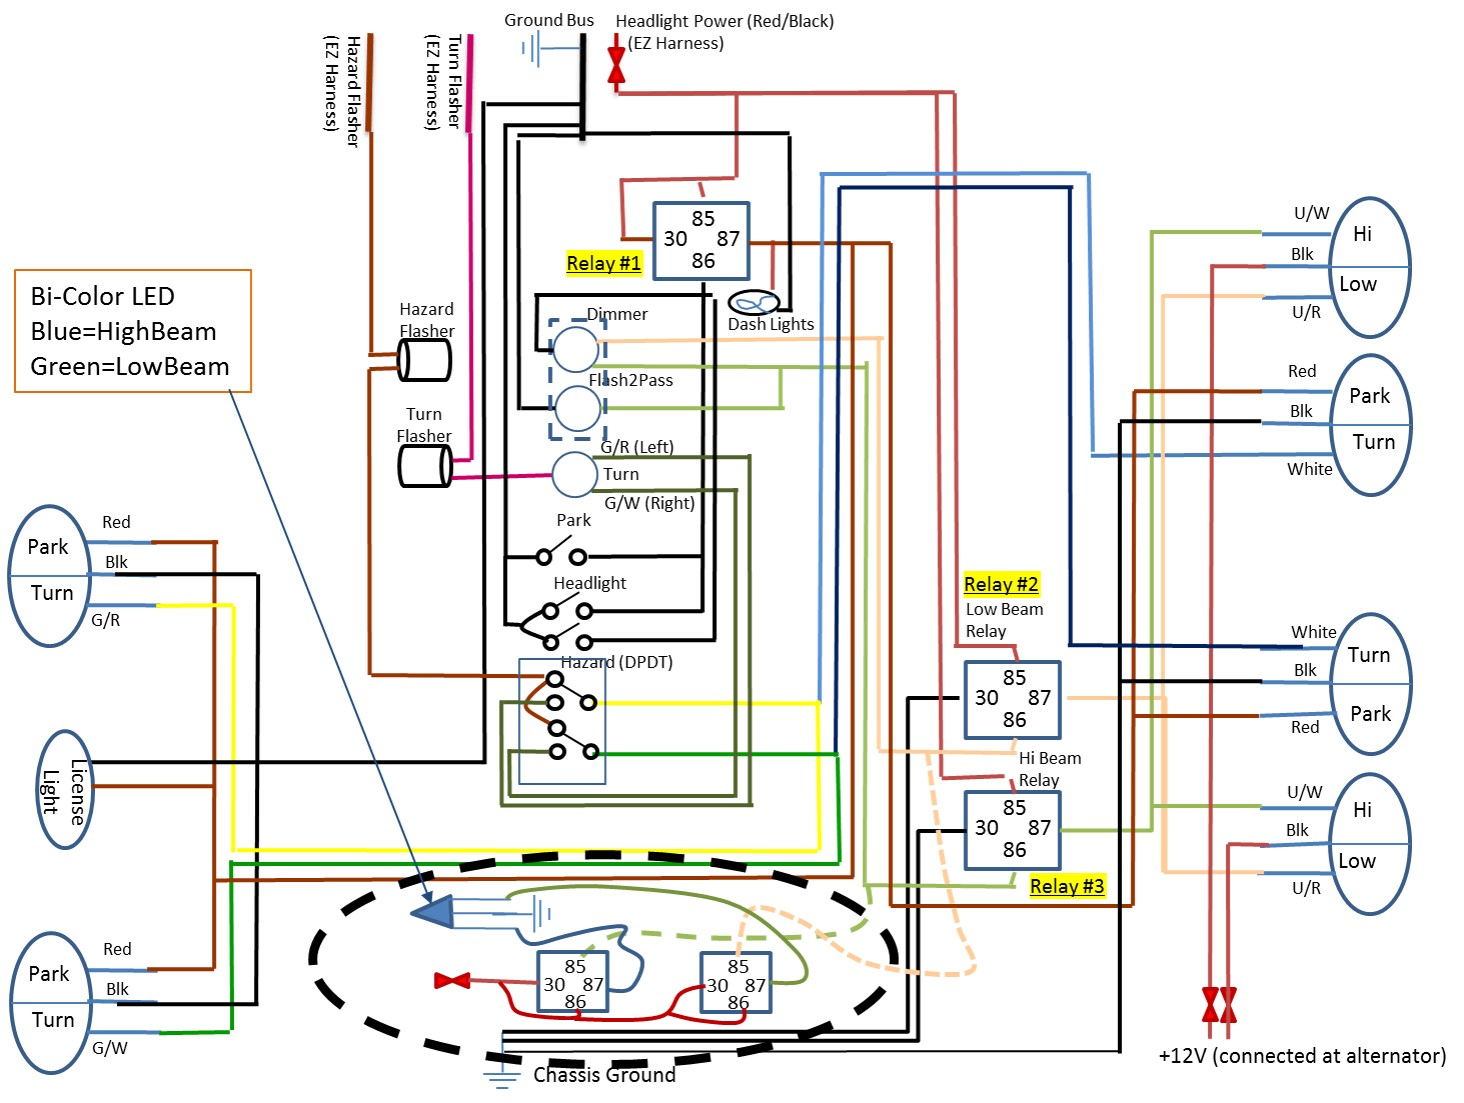 car led light wiring diagram unlabeled muscles blank relay could use some help on what should be a simple